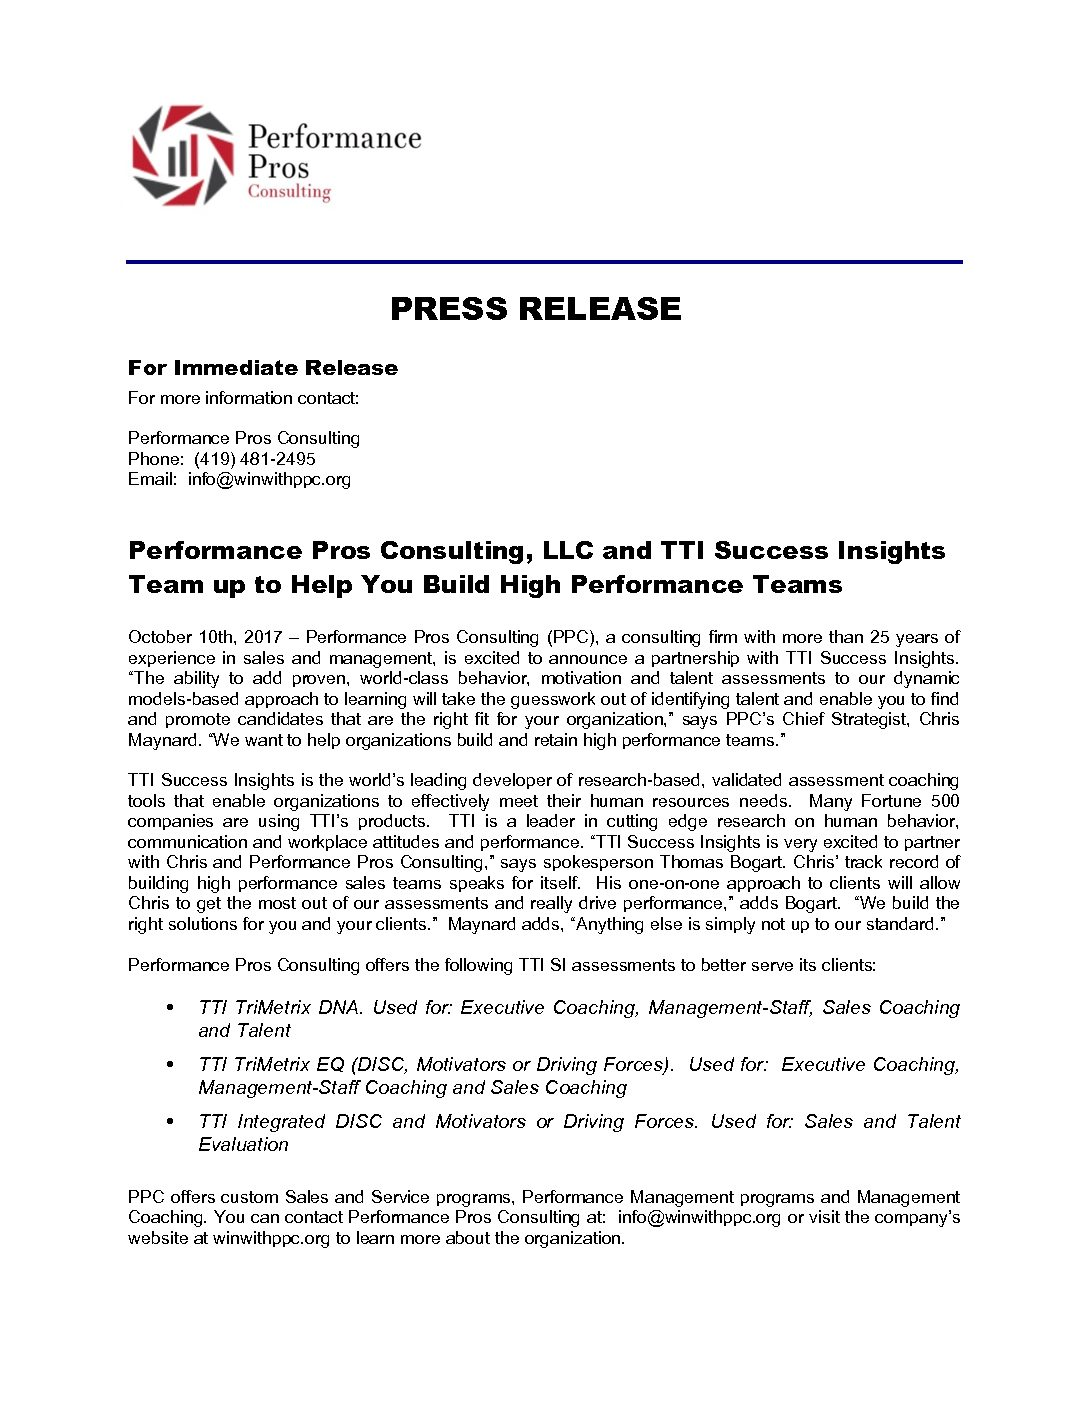 PPC_TTI Success Insights press release